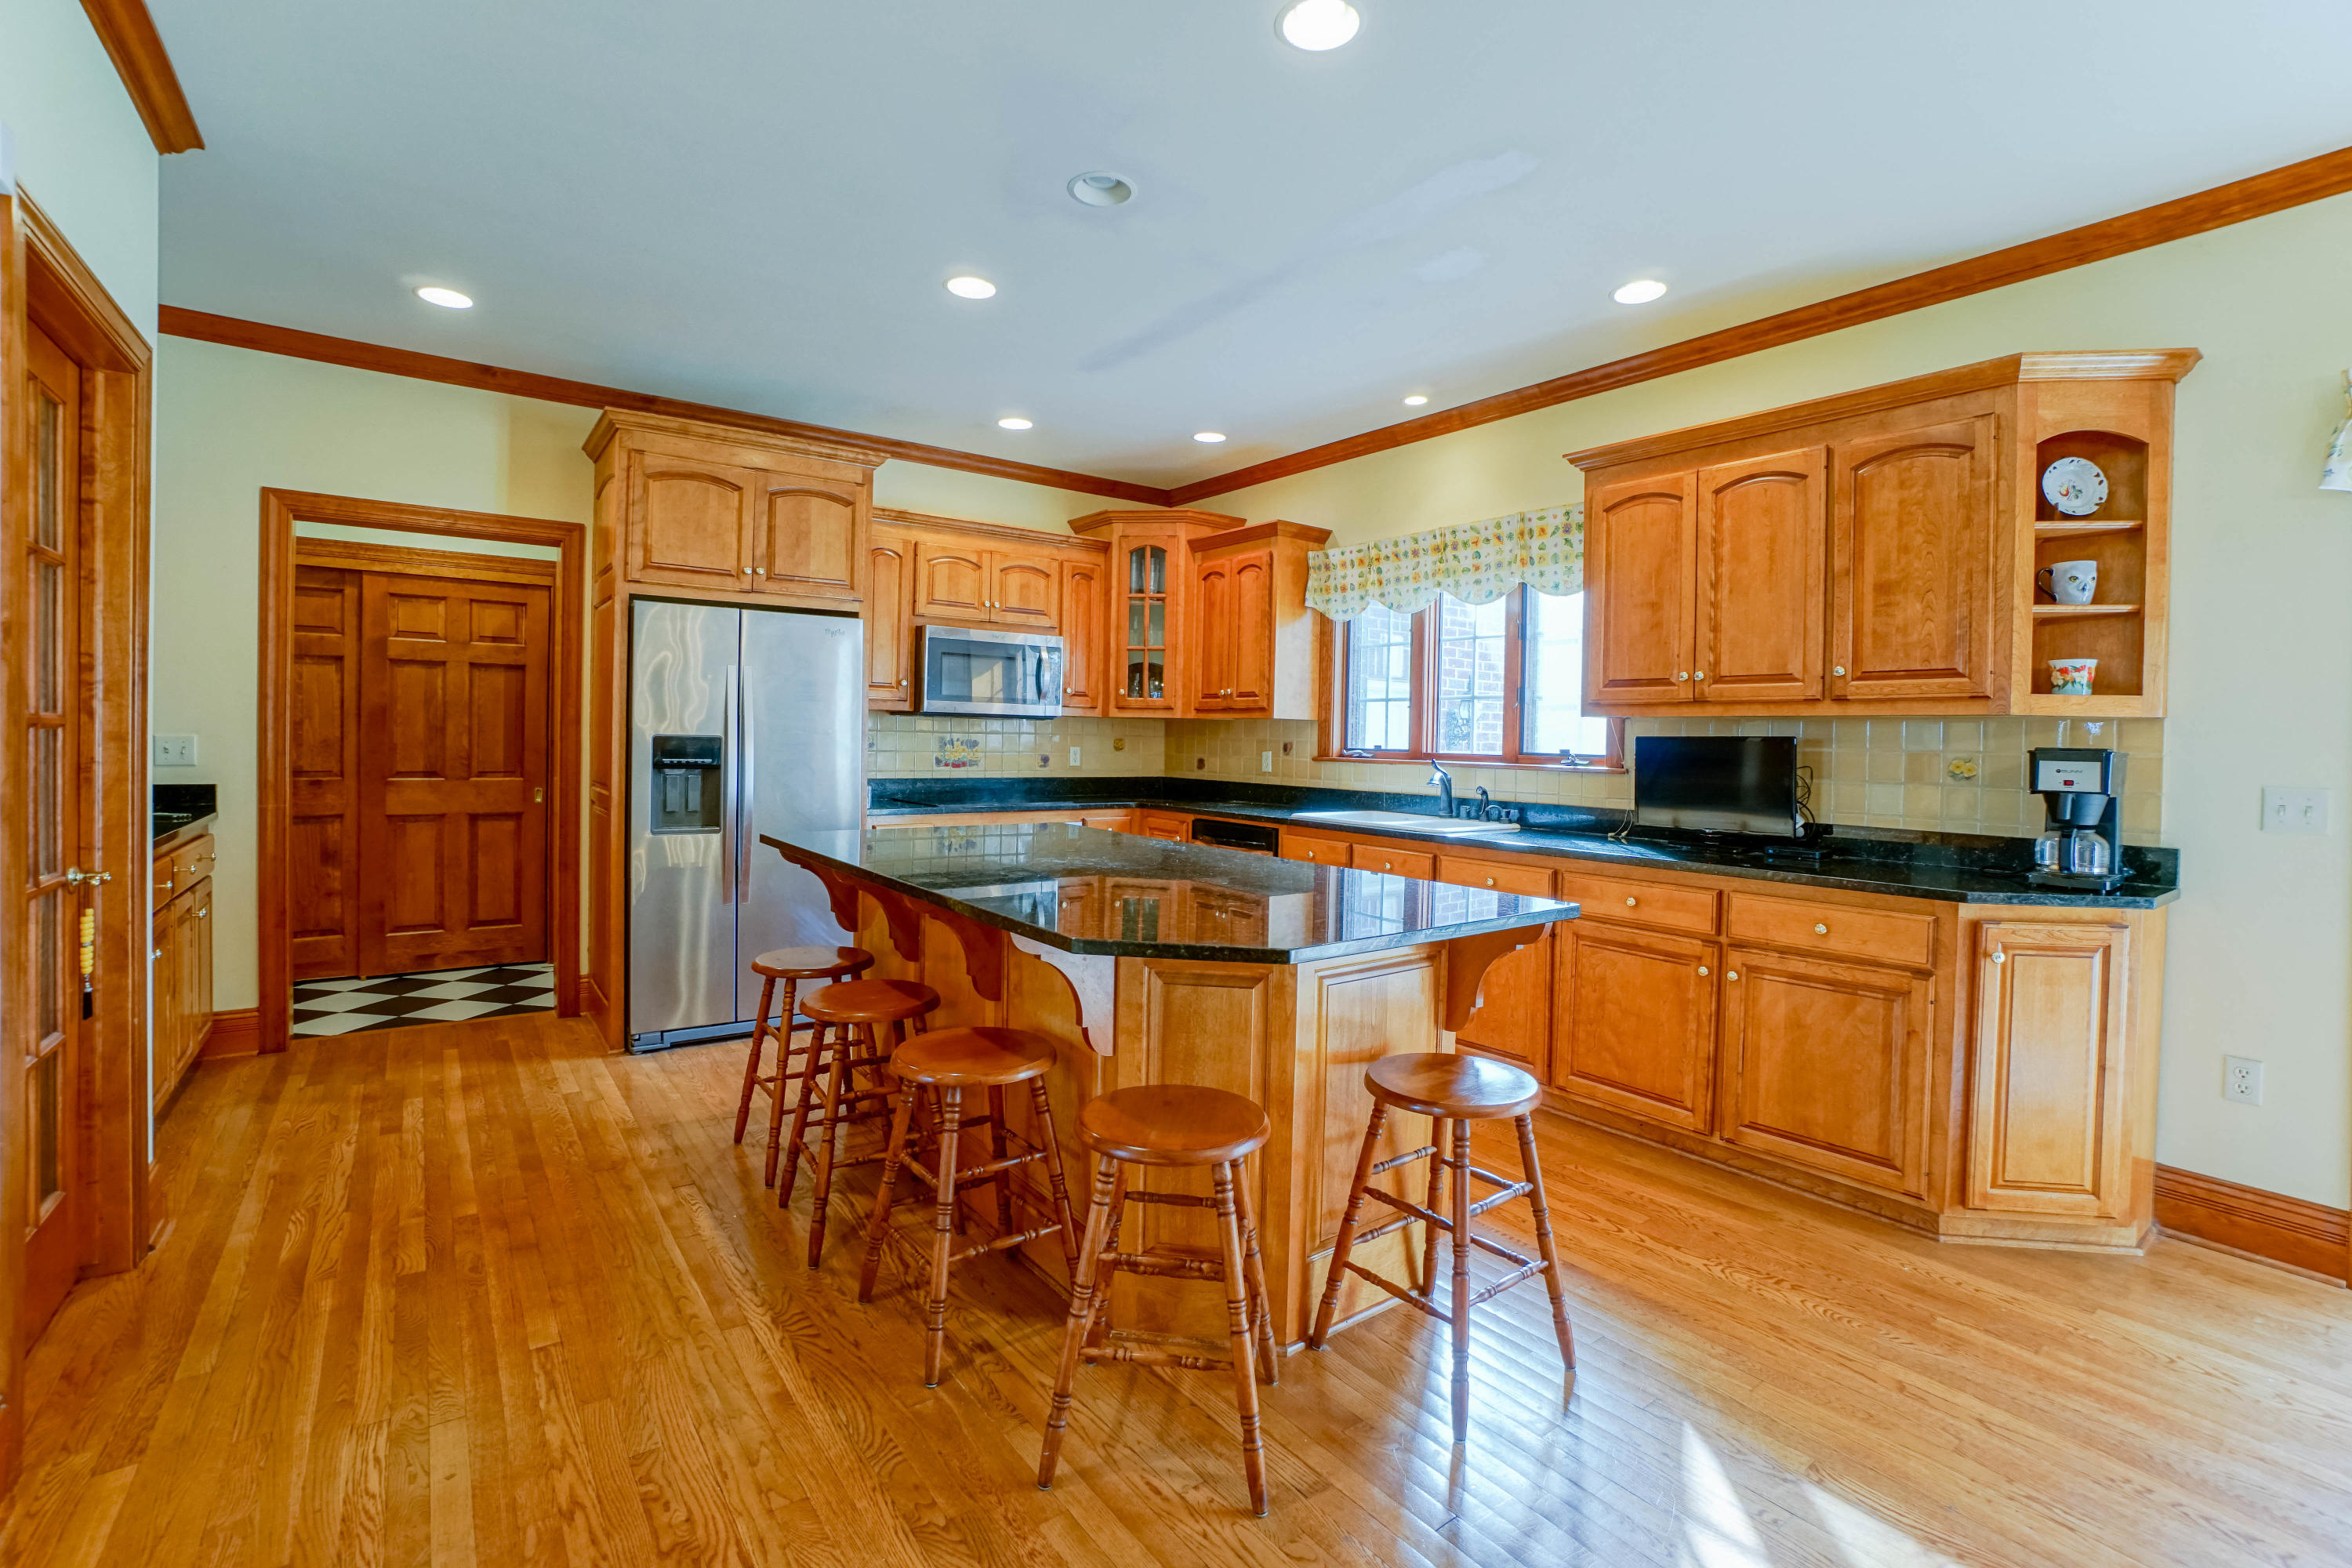 754 Stonegate Pass, Richfield, Wisconsin 53017, 5 Bedrooms Bedrooms, 11 Rooms Rooms,4 BathroomsBathrooms,Single-family,For Sale,Stonegate Pass,1689894